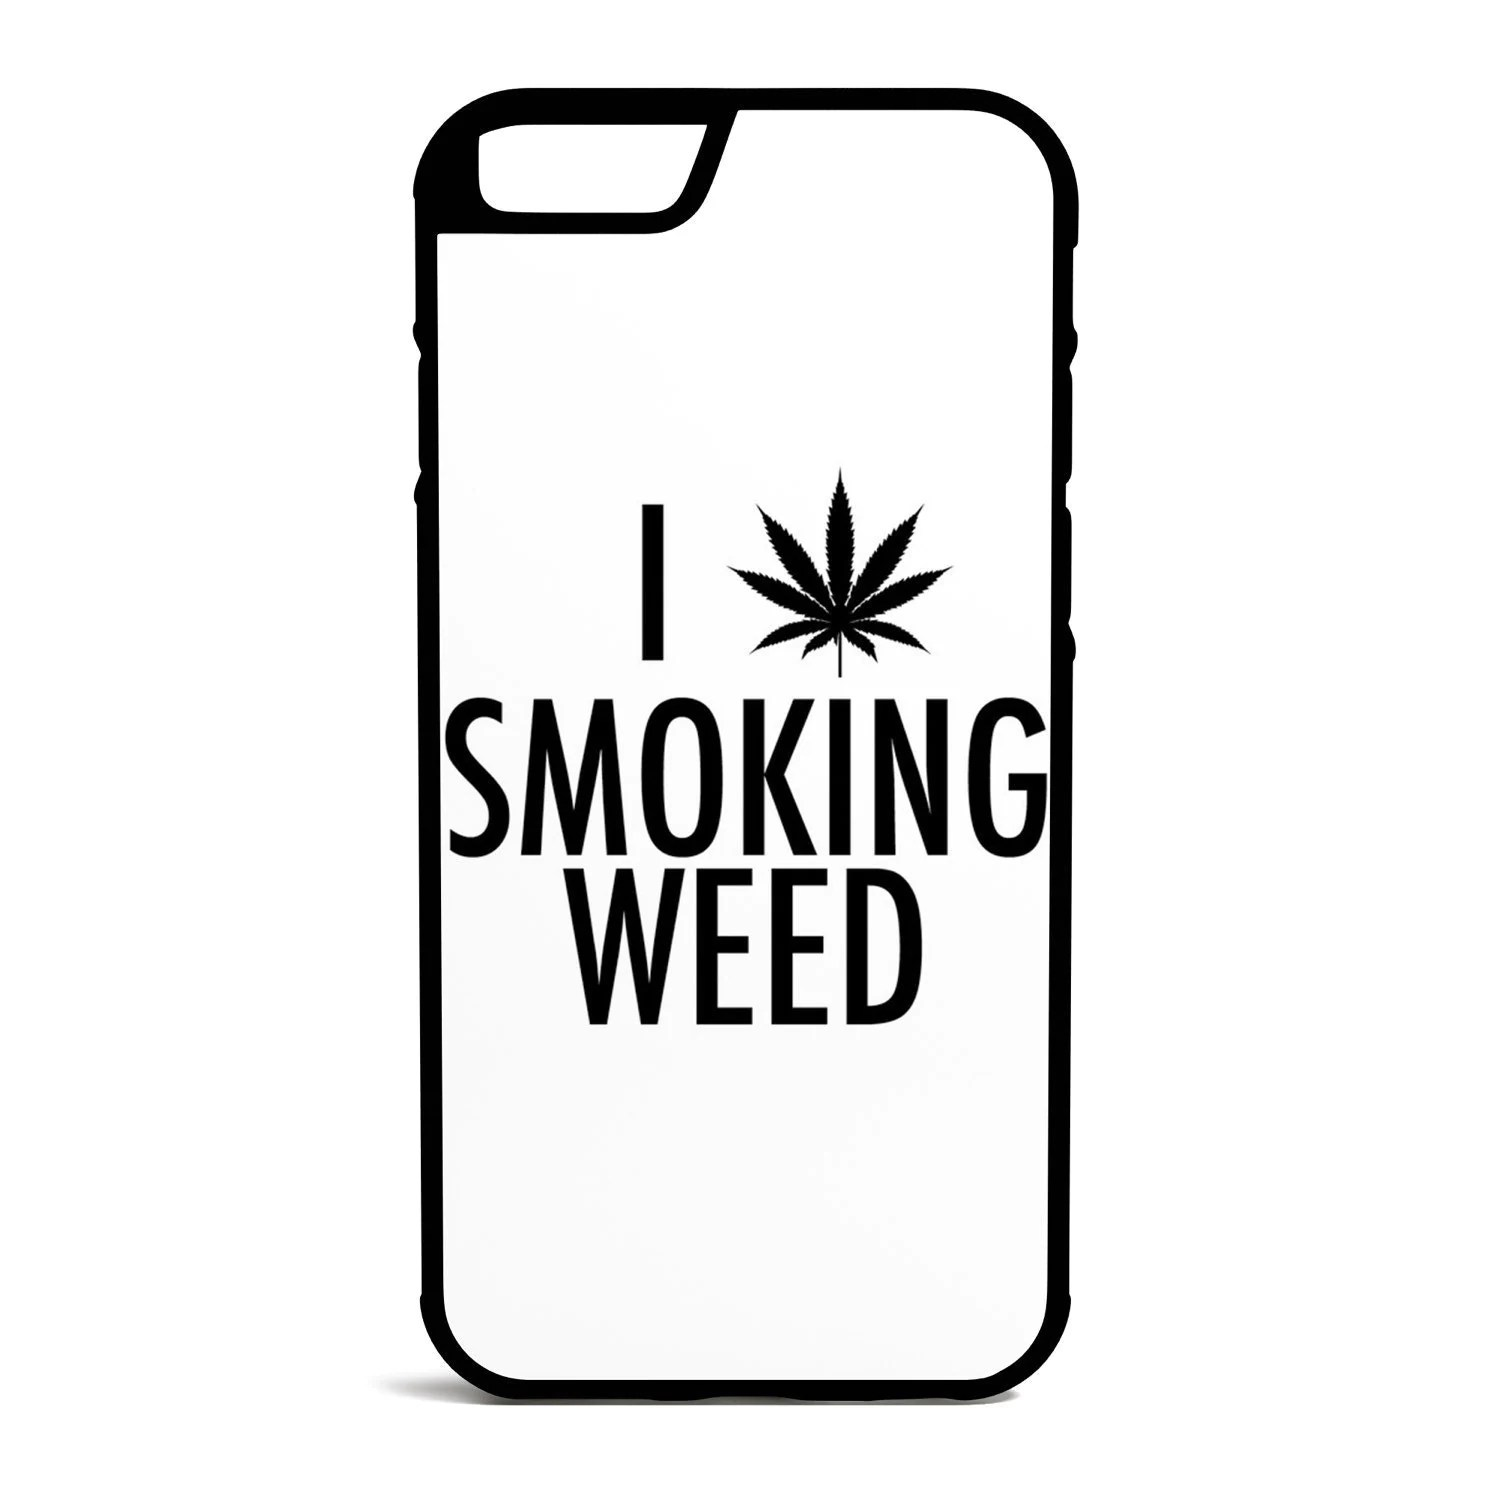 I Love Smoking Weed Iphone Galaxy Note Lg Htc Hybrid Rubber